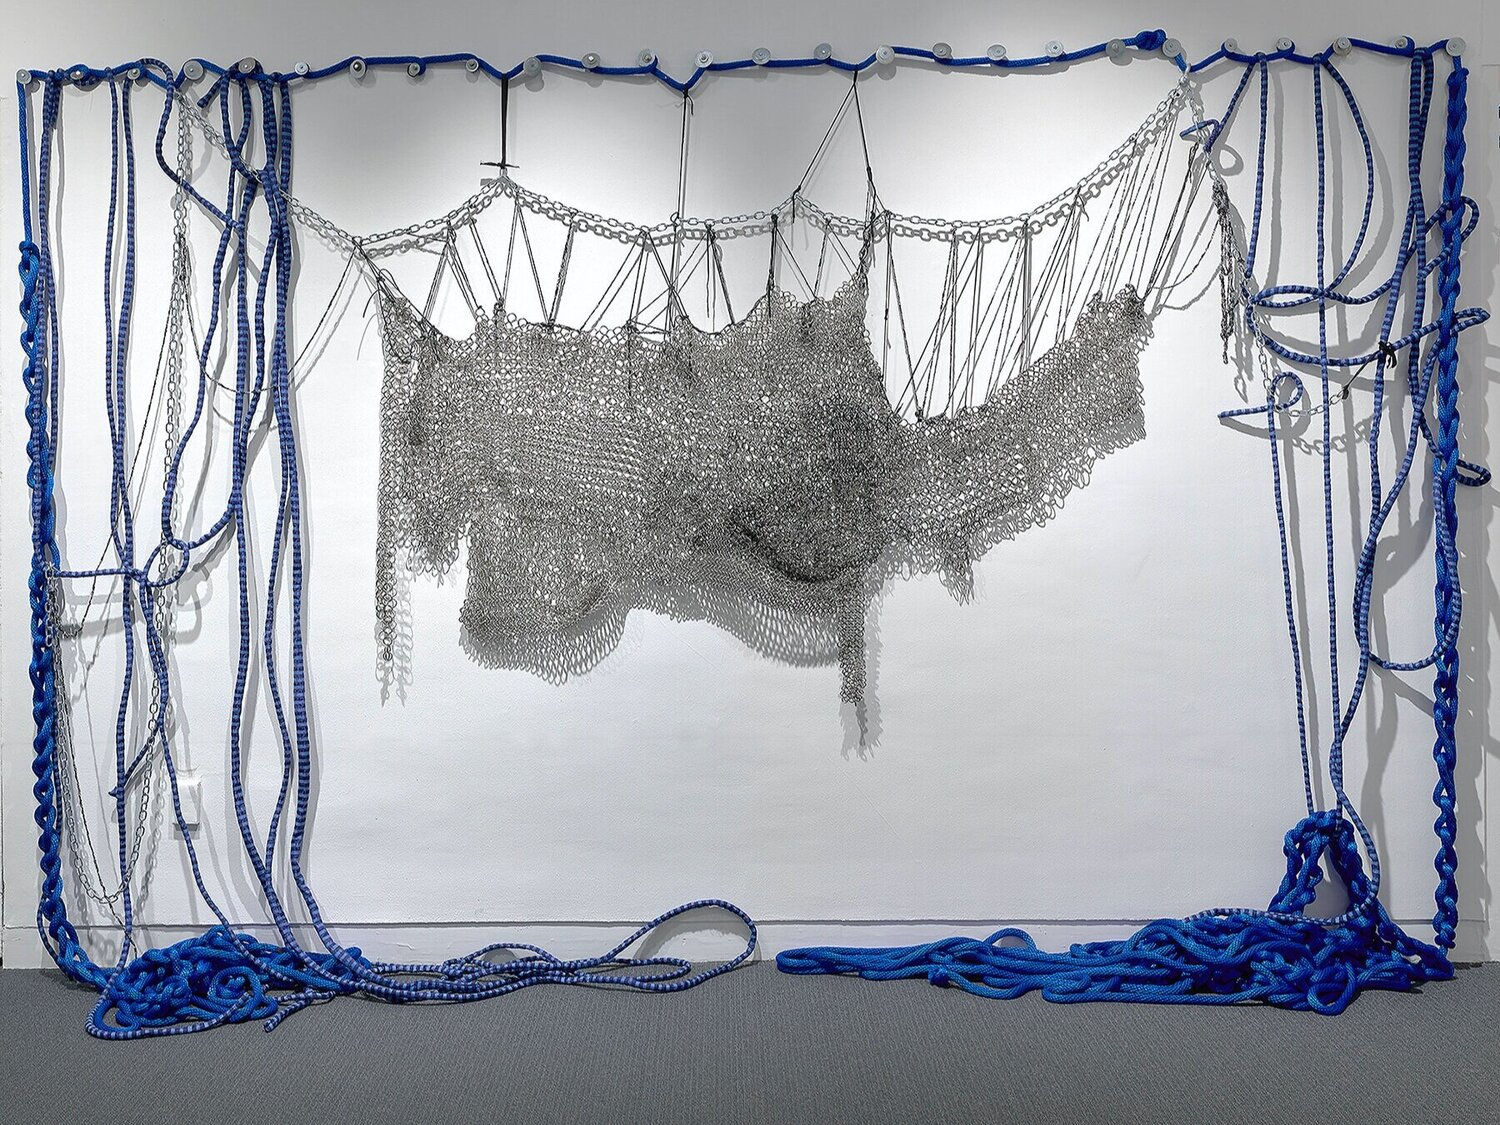 Blue rope on walls and floor with silver chains